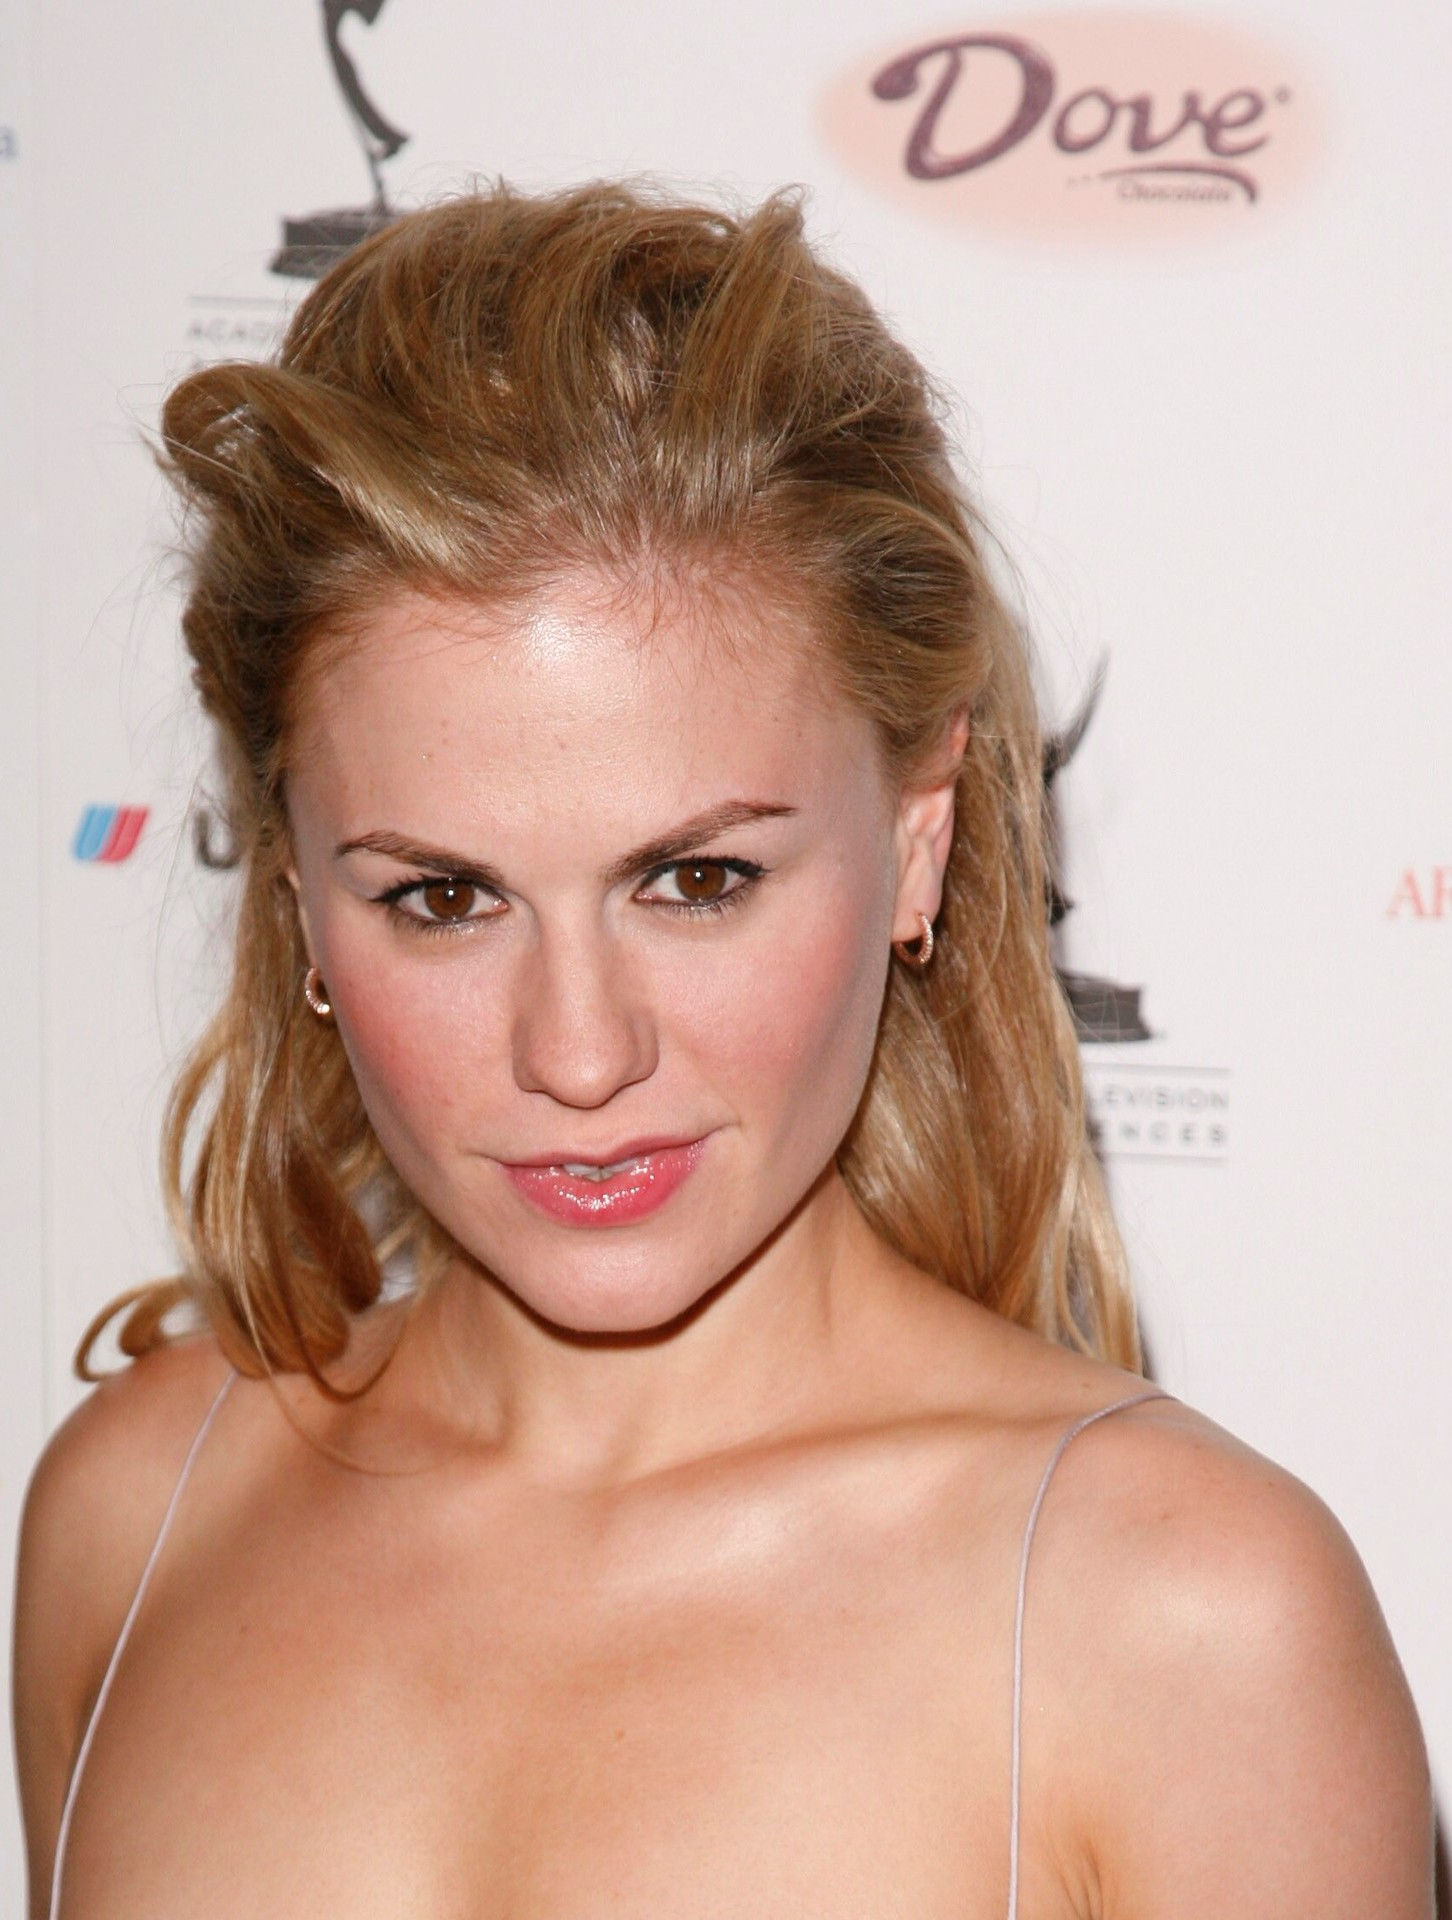 Anna Paquin Bra Size, Age, Weight, Height, Measurements ... Anna Paquin Age